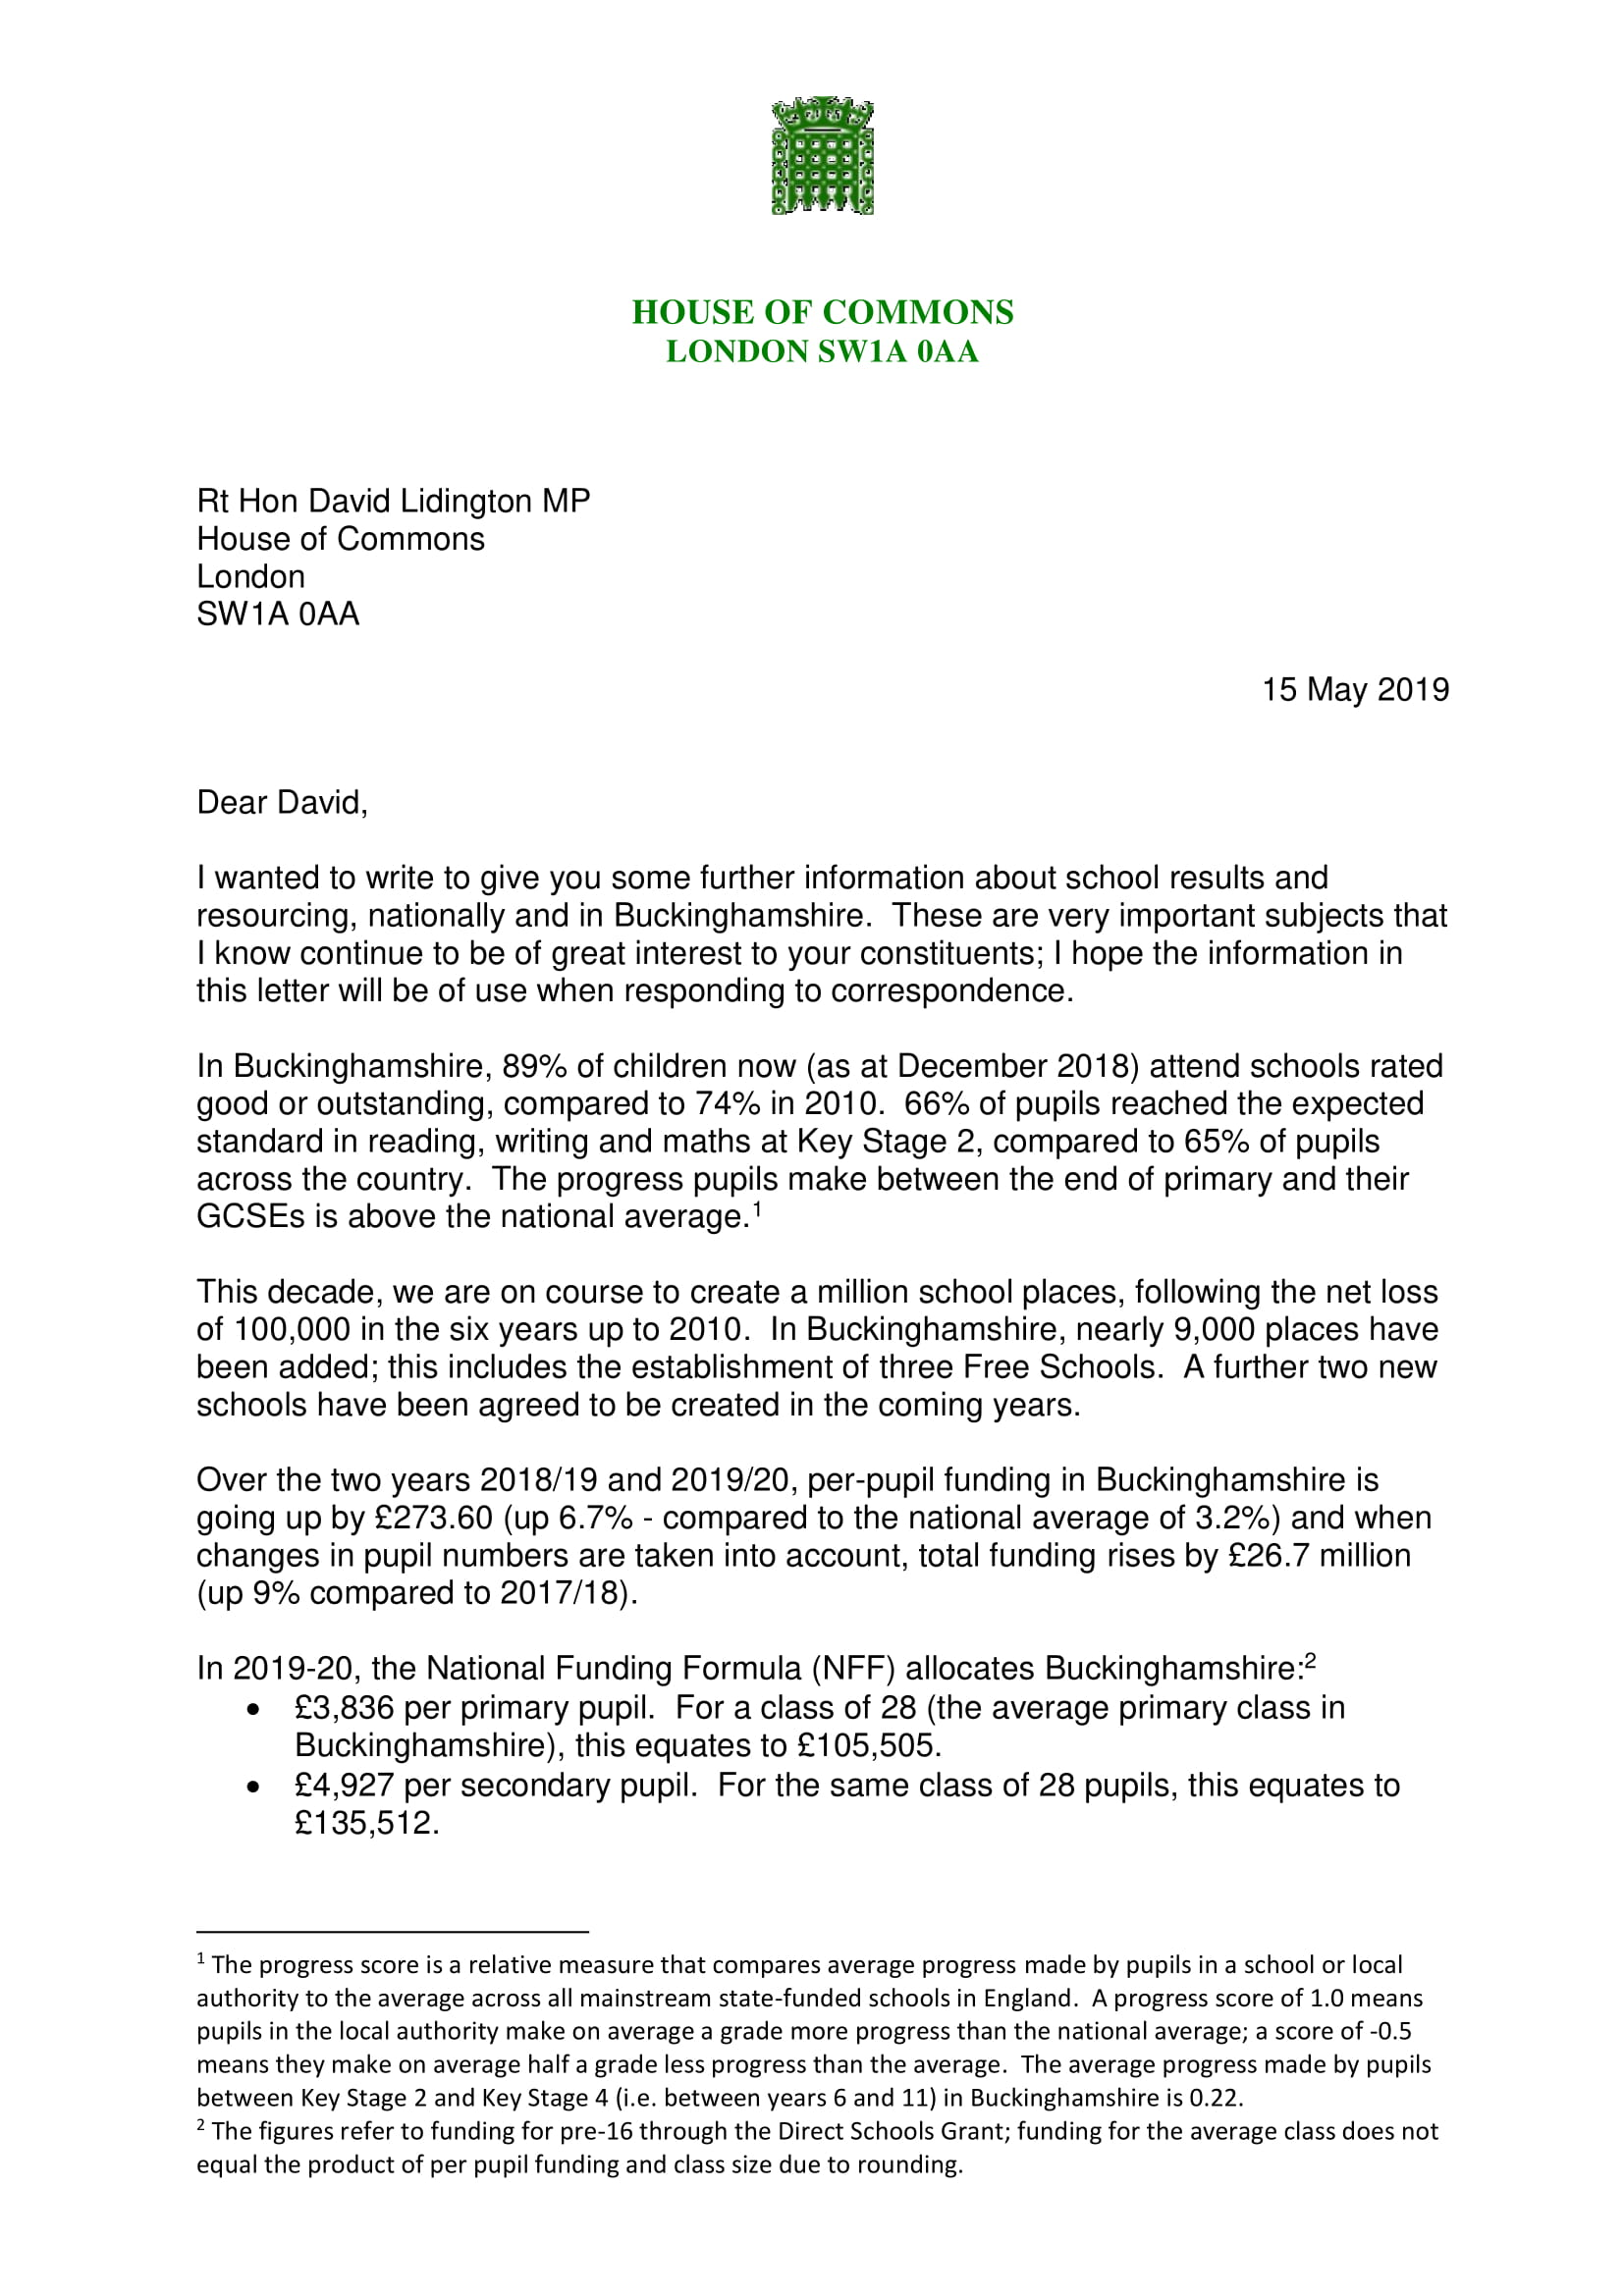 DH to David Lidington – School resourcing in Buckinghamshire May 2019-1.jpg